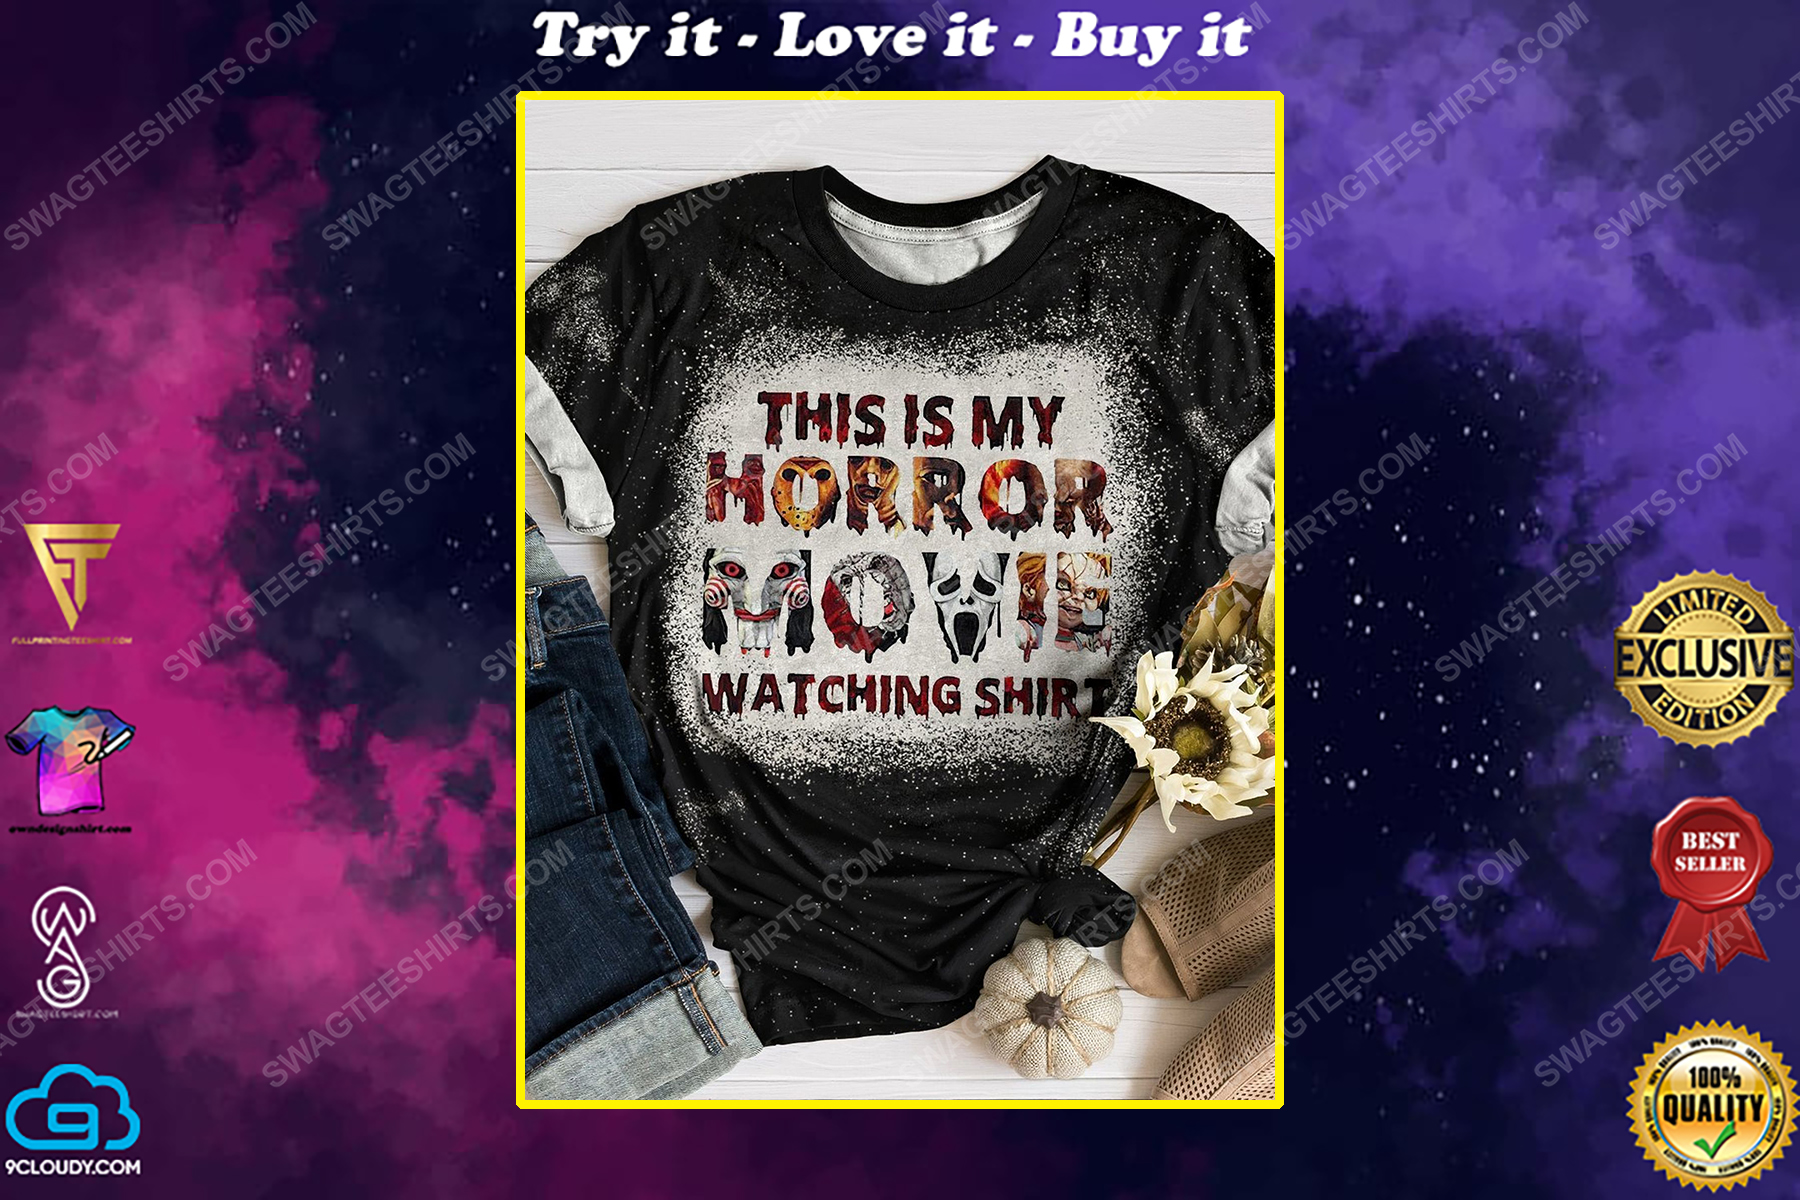 This is my horror movie watching shirt bleached shirt